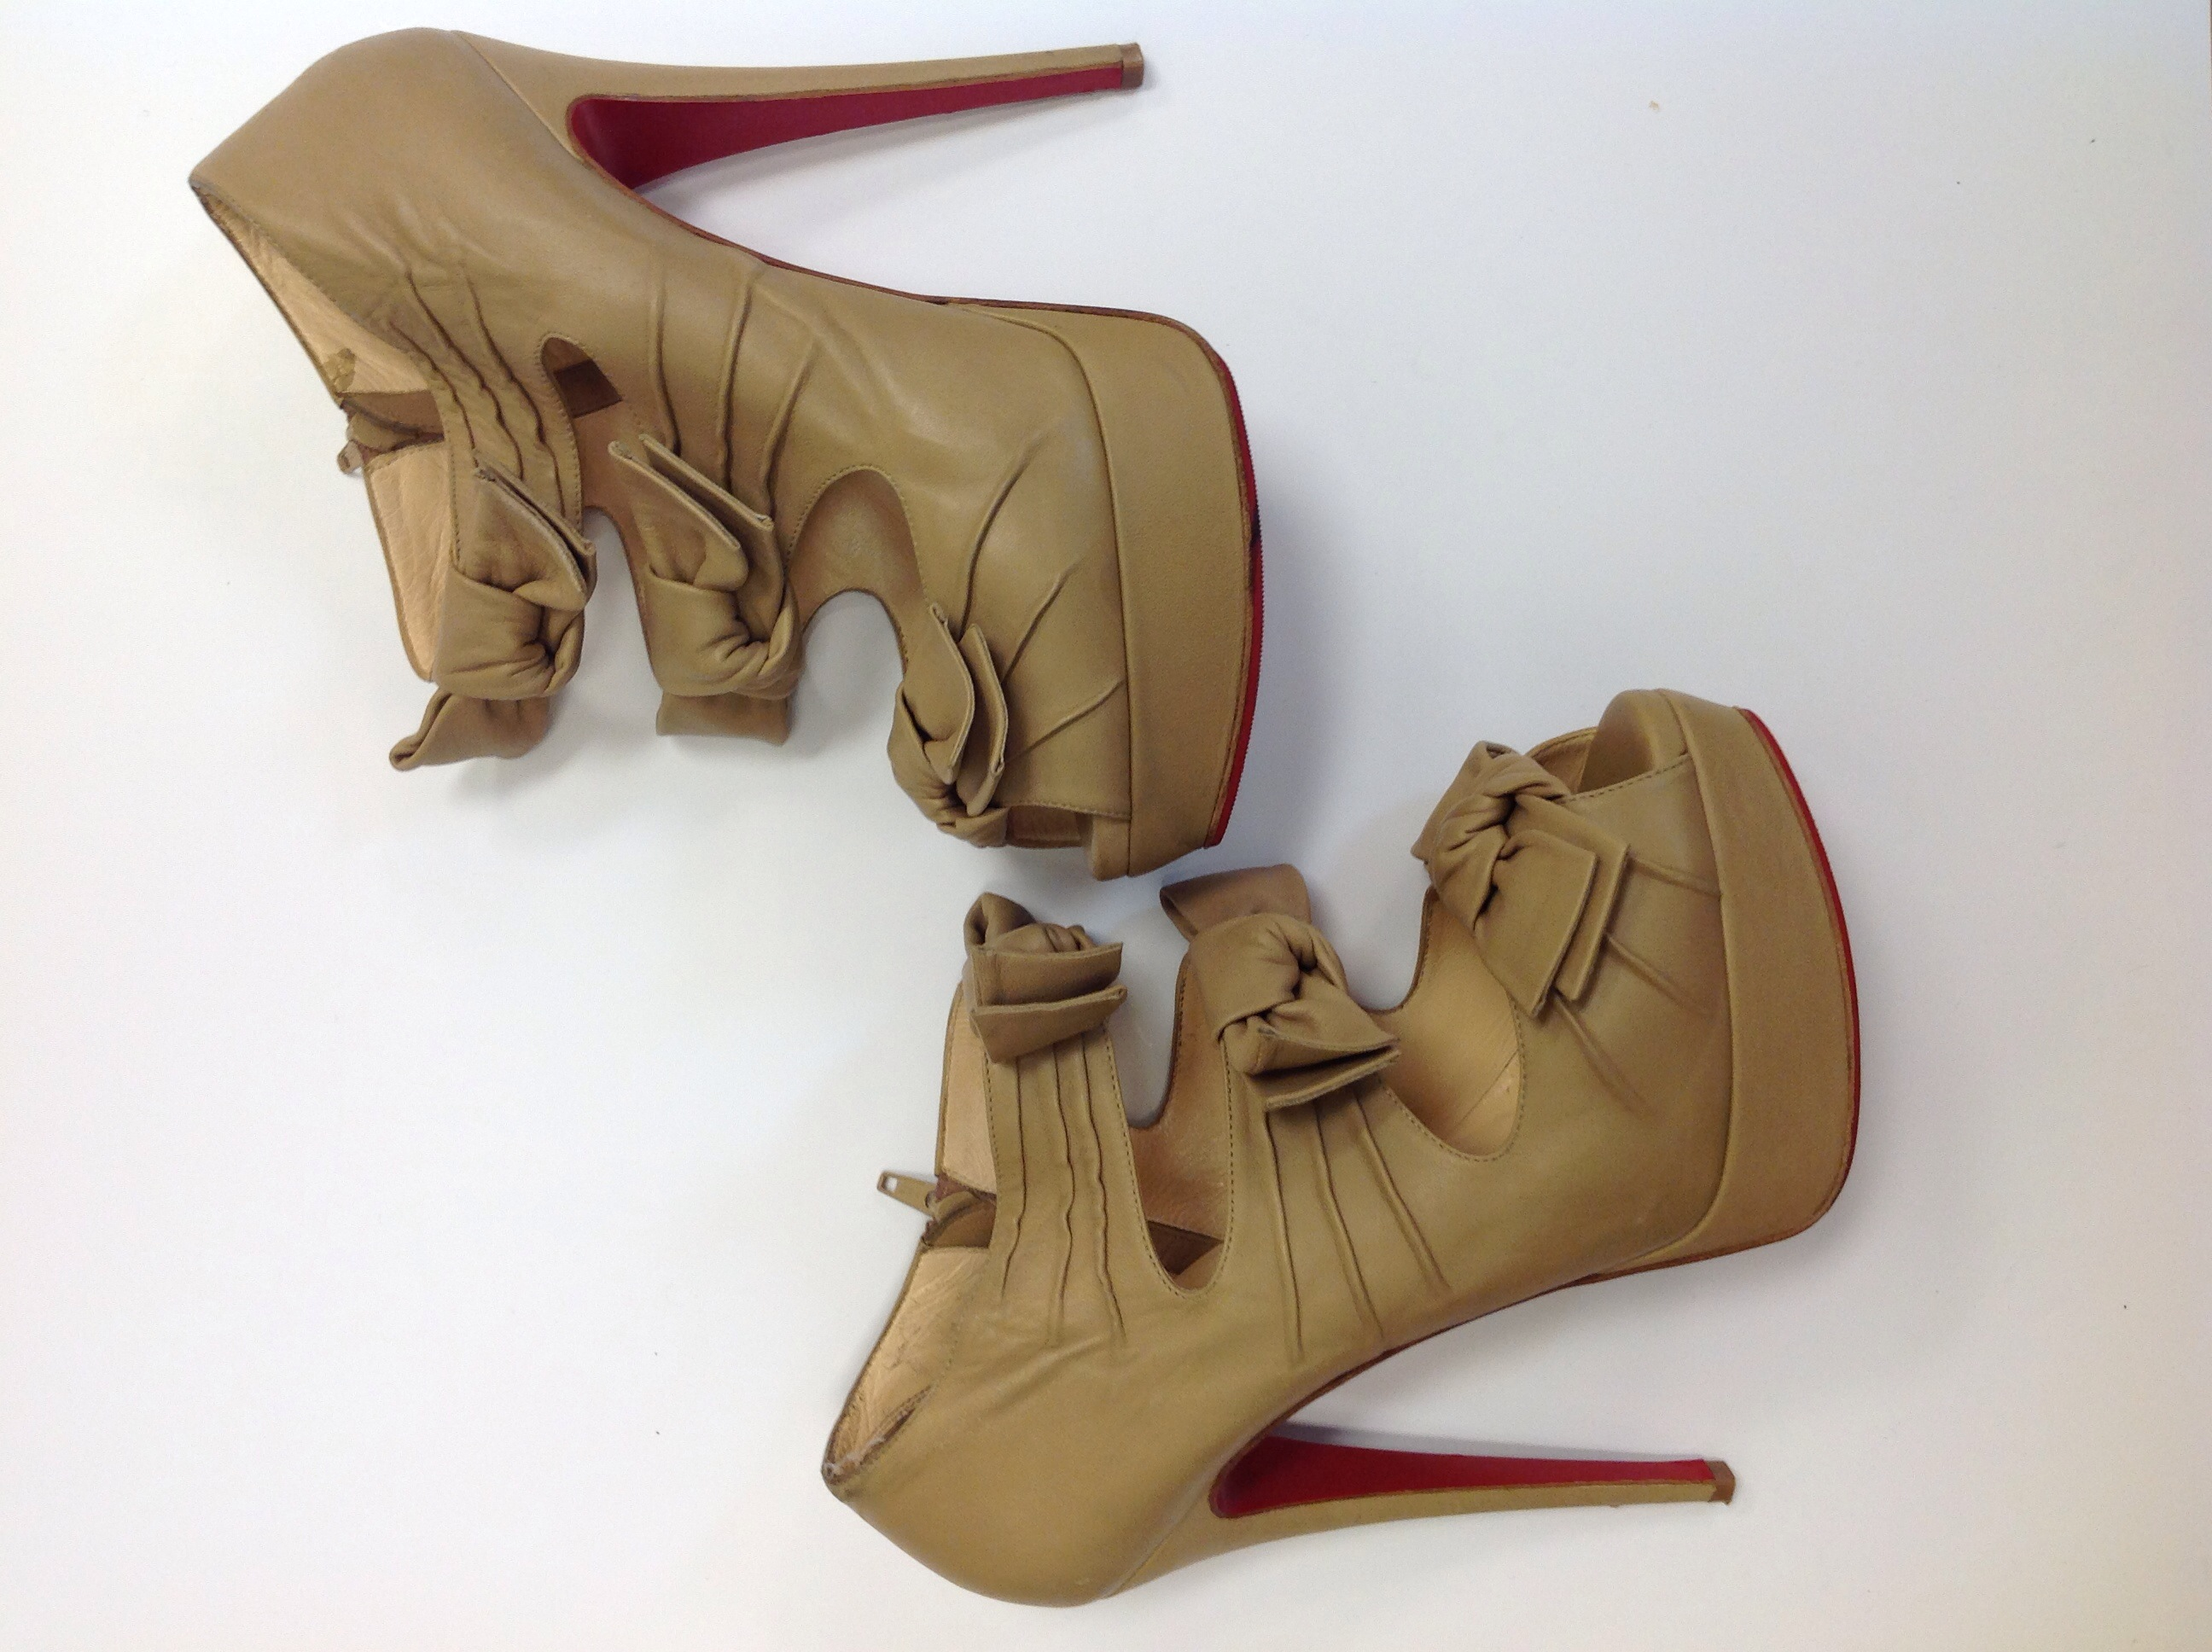 real louboutin outlet nederland | 2016 Christian Louboutin Outlet